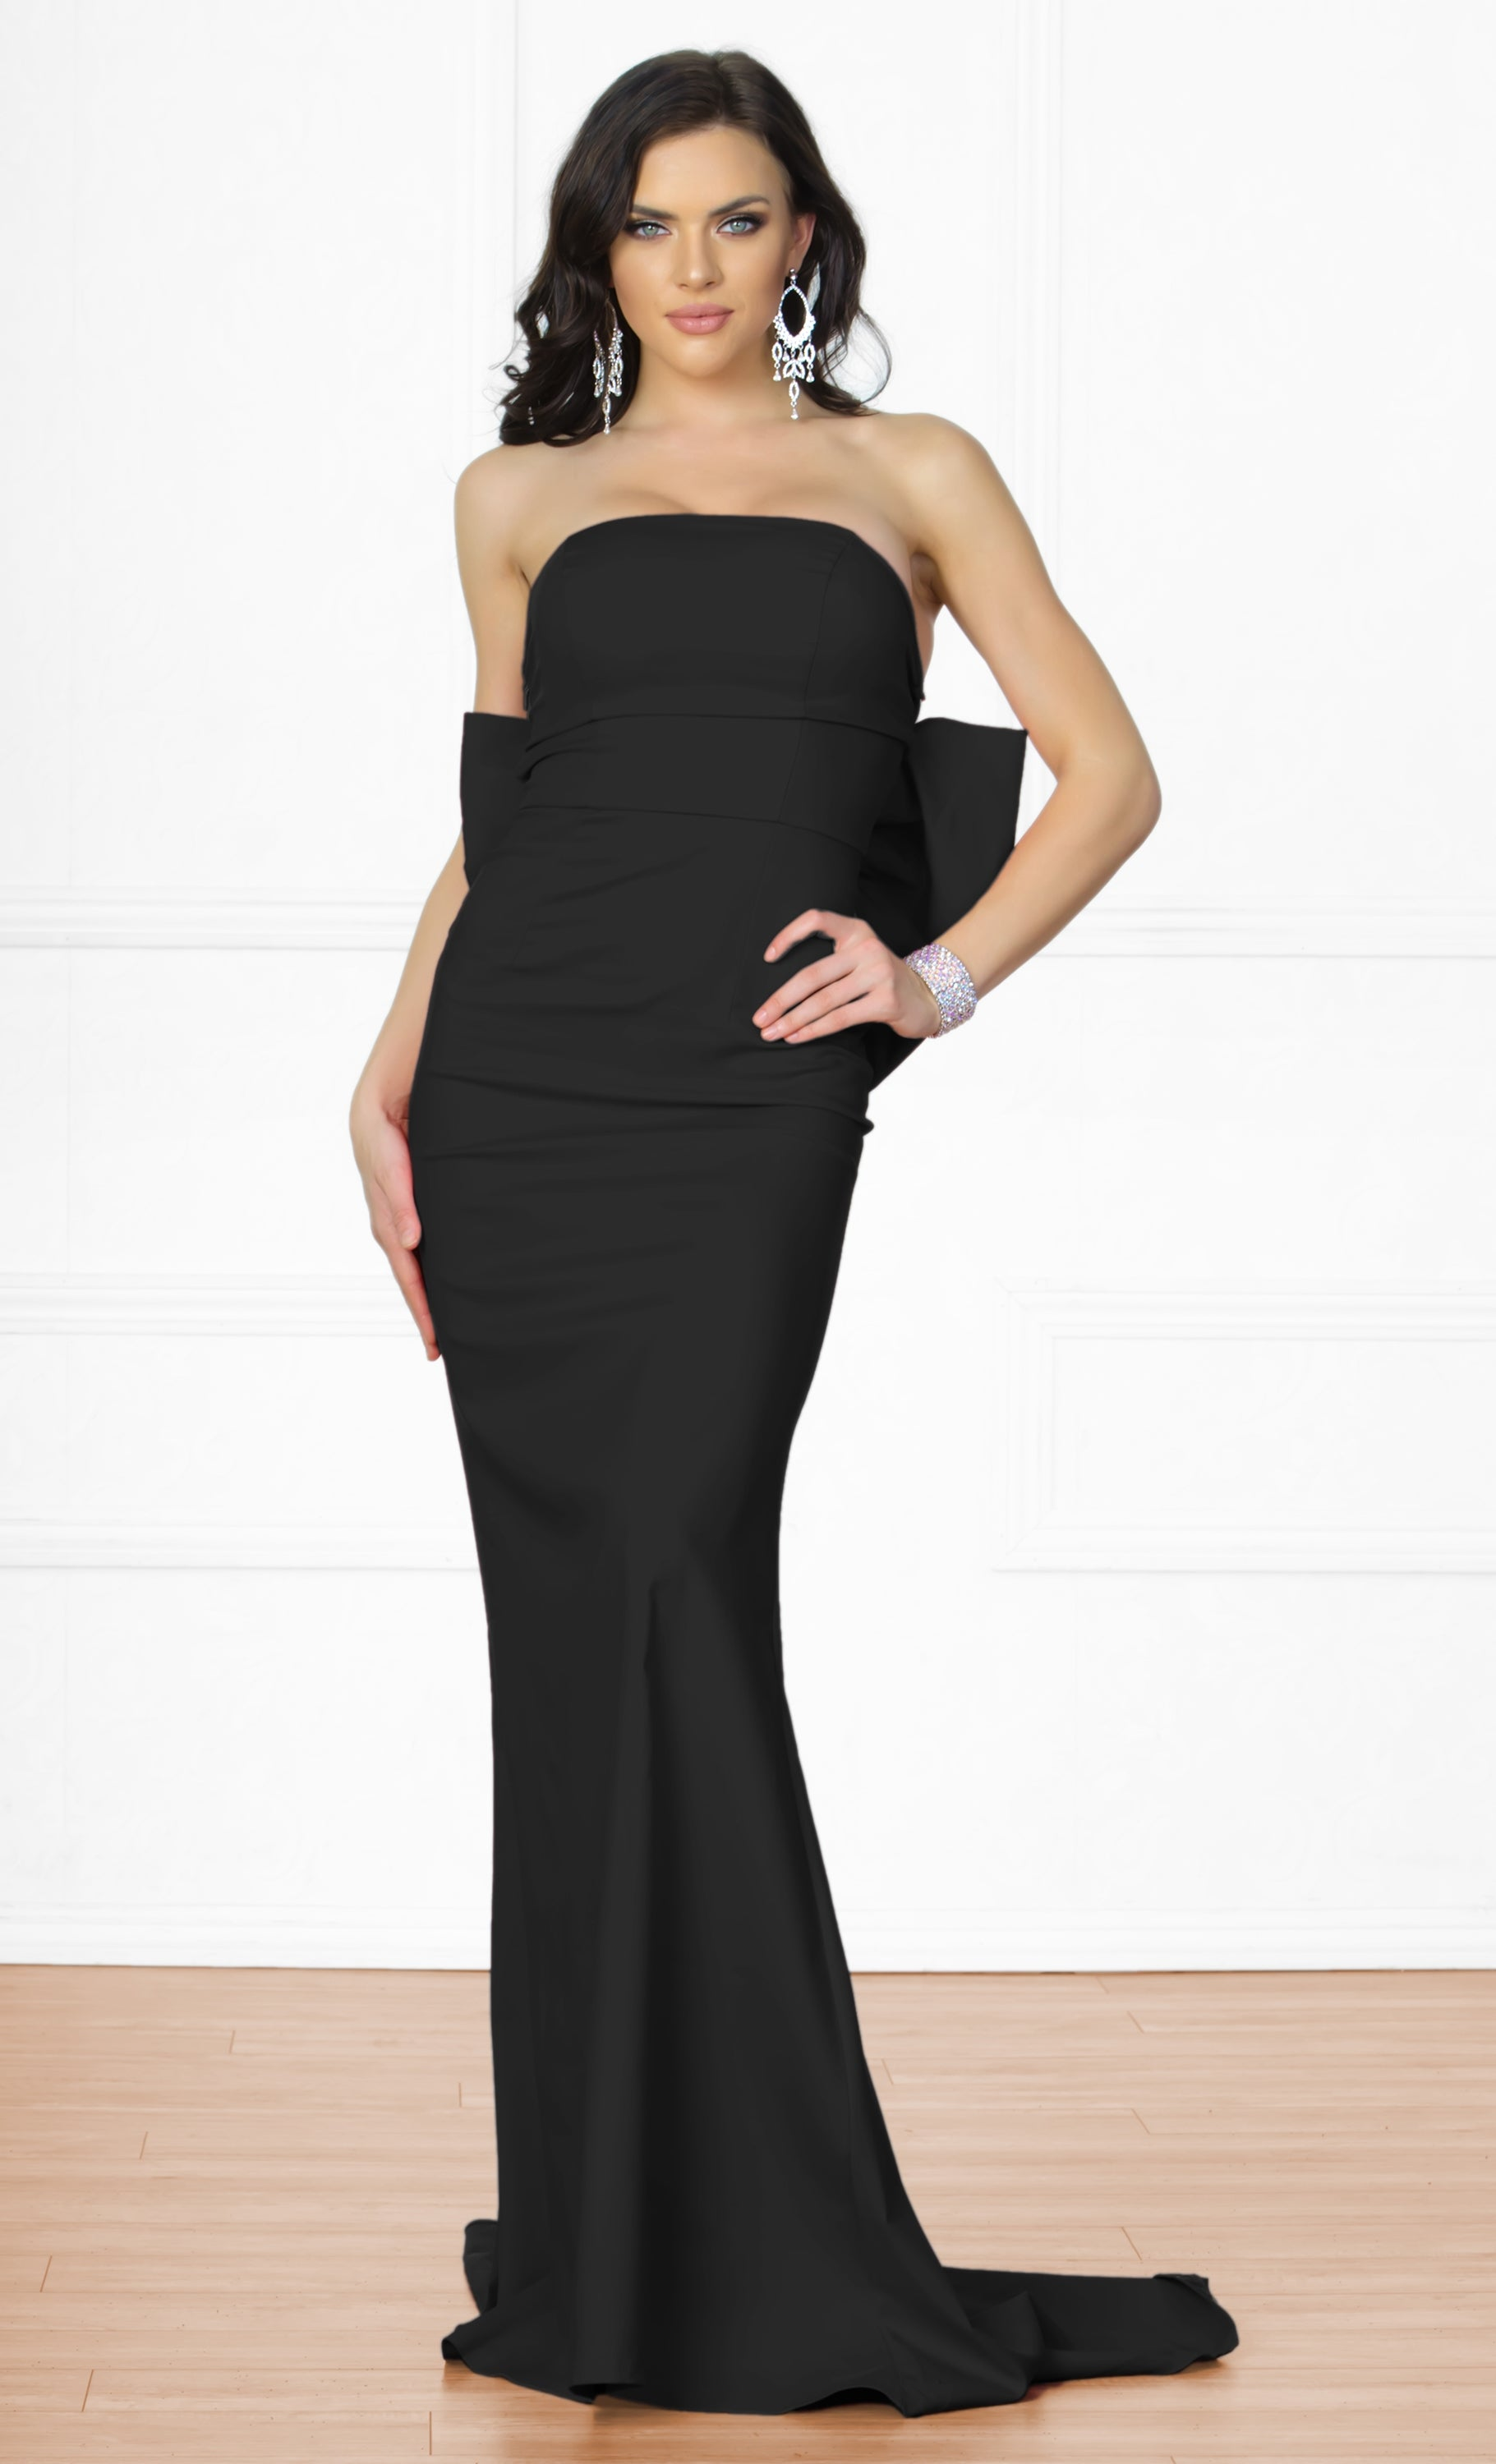 Indie XO Bow Me a Kiss Black Strapless Low Back Maxi Dress Gown